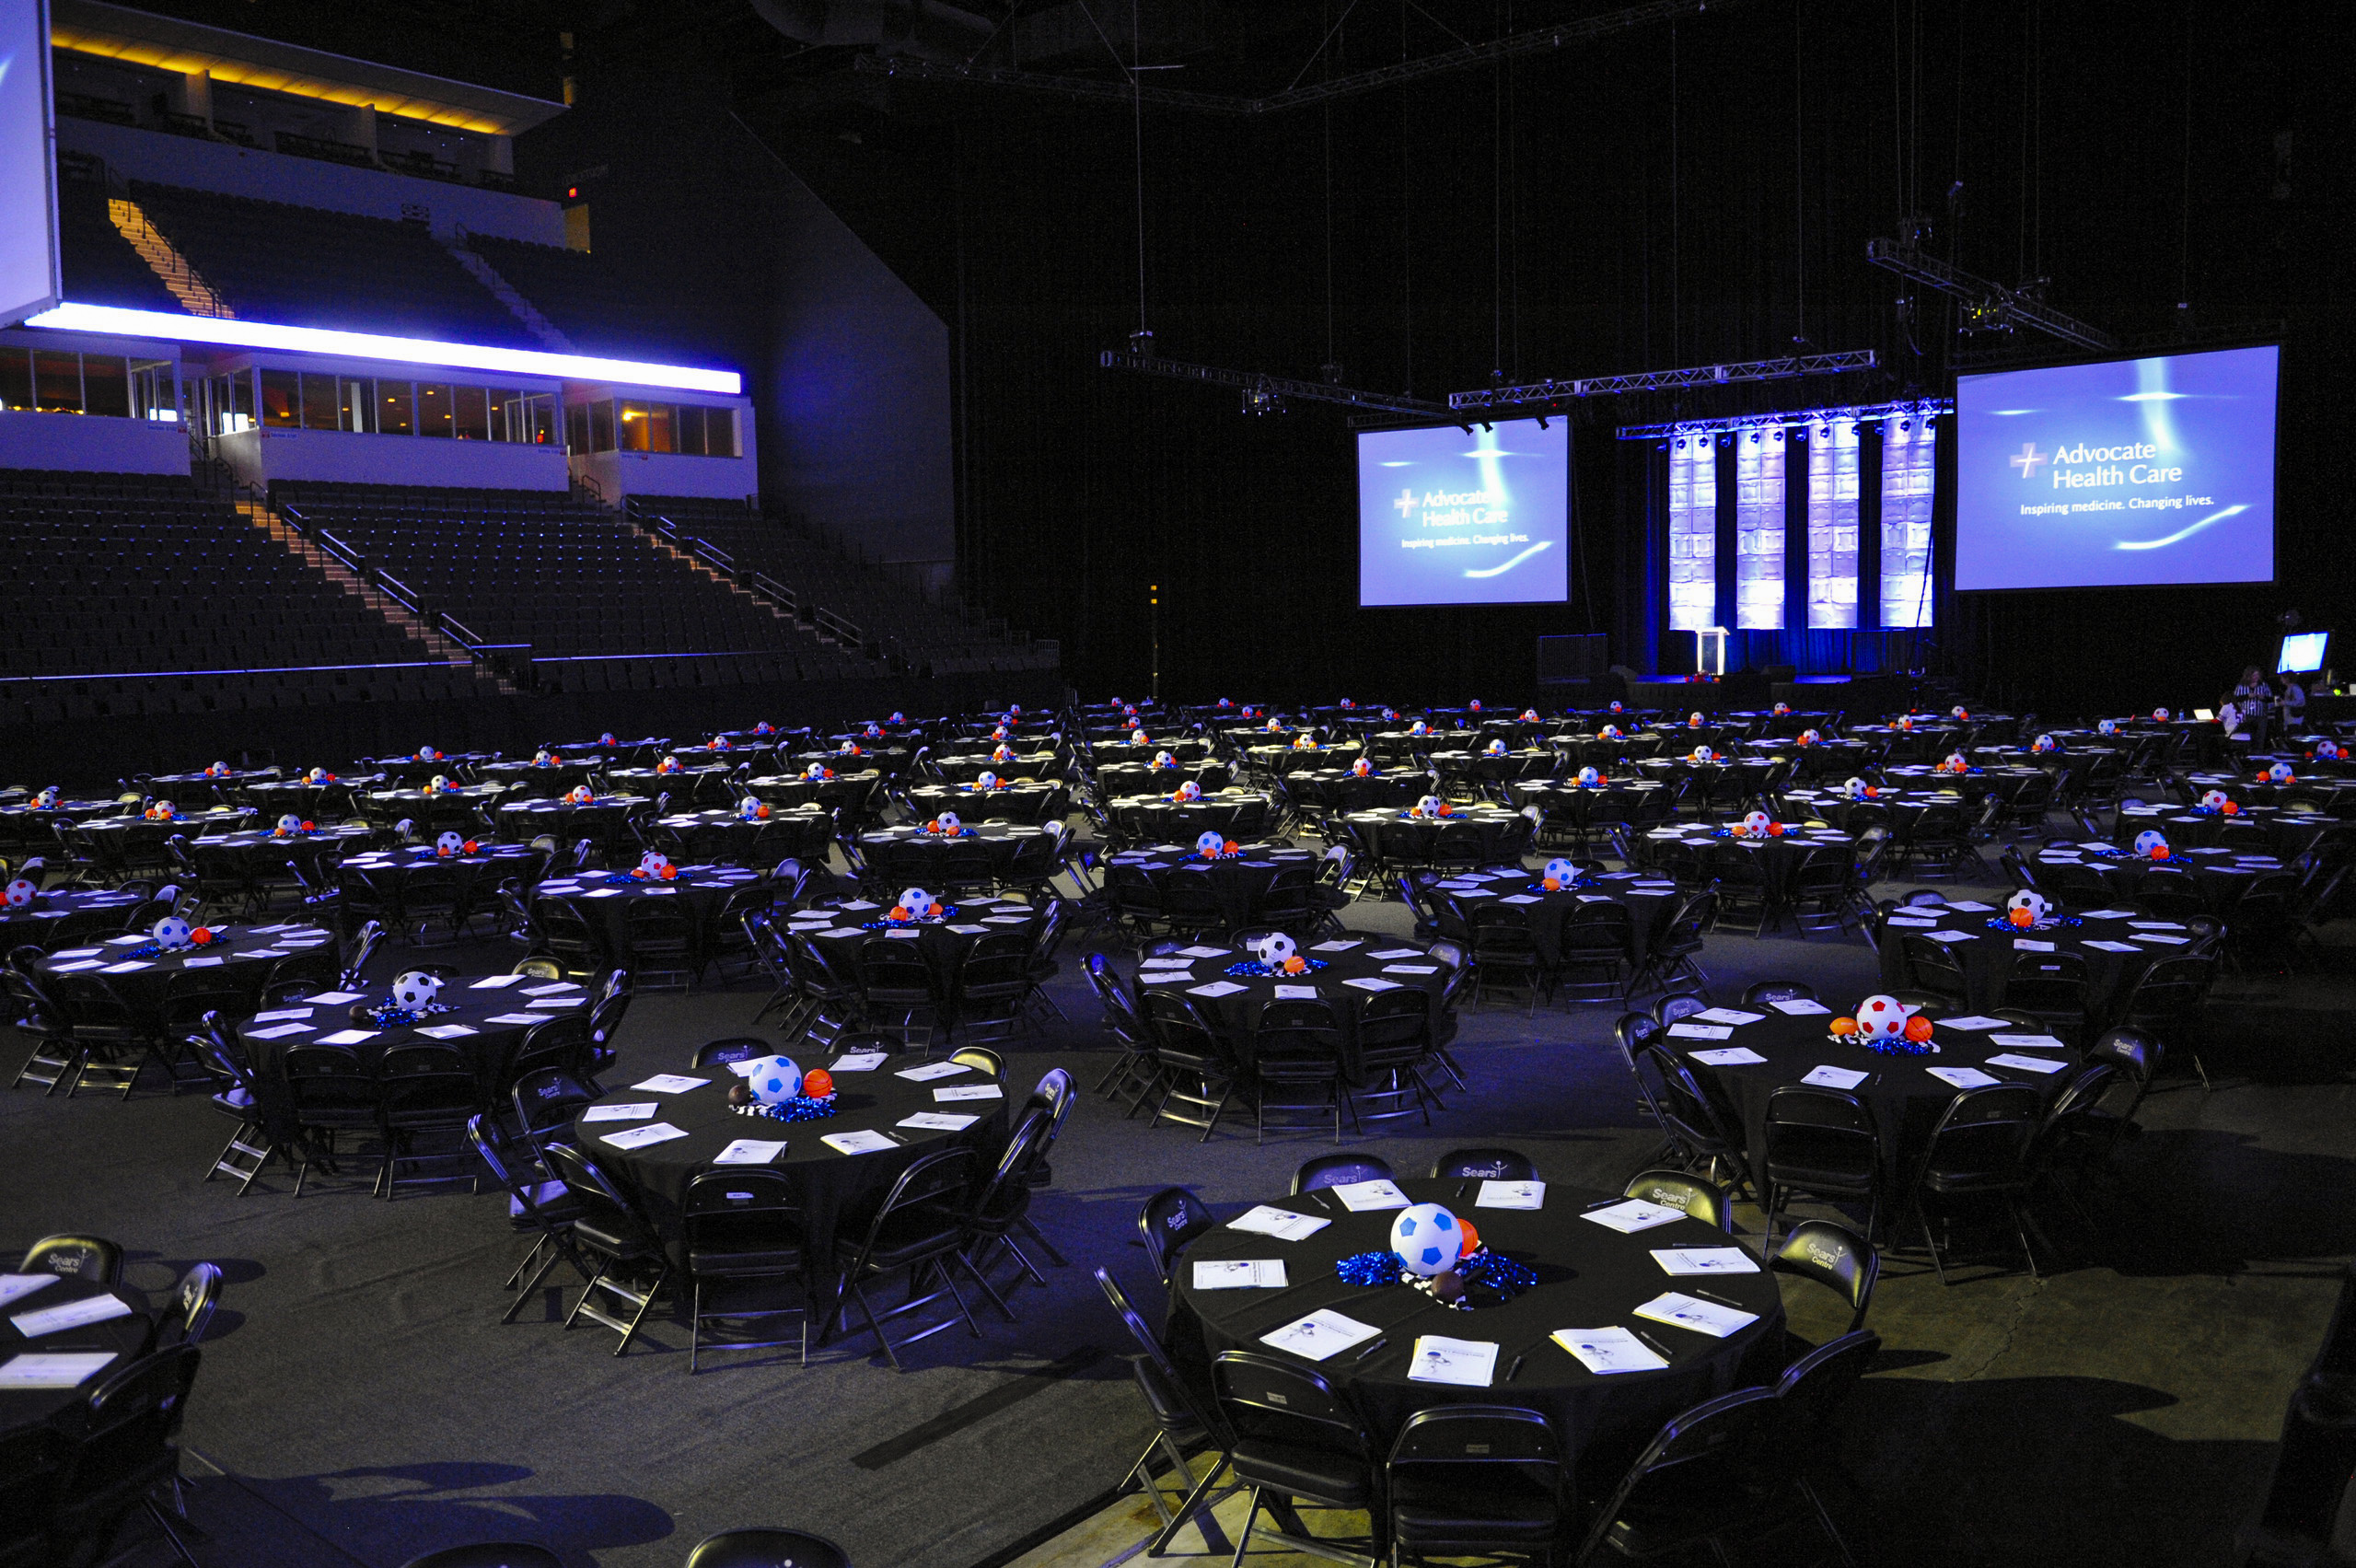 Sears Centre Arena event space in Chicago, Chicagoland Area